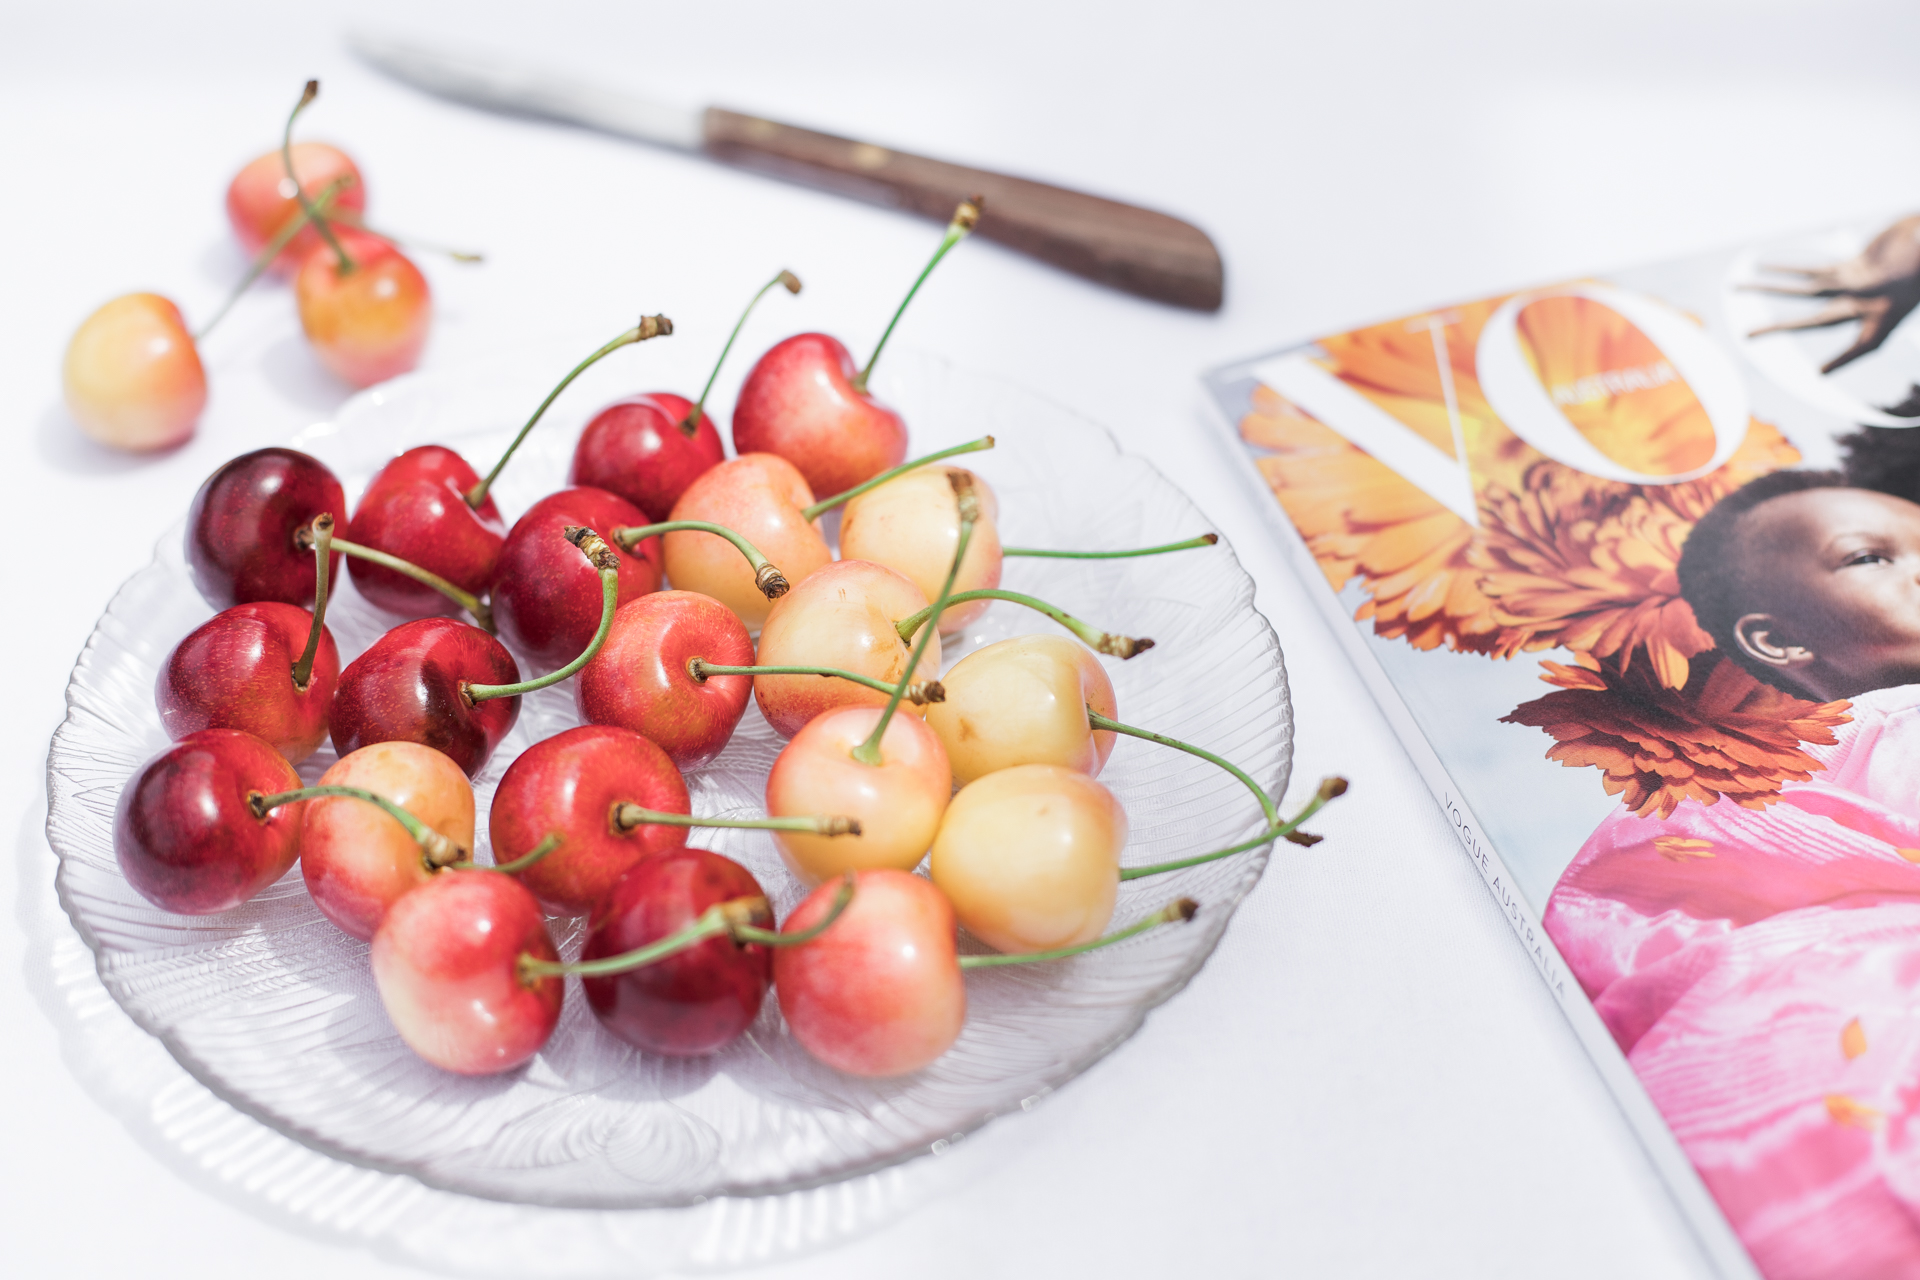 Starletta cherries 2018 (35 of 185).JPG